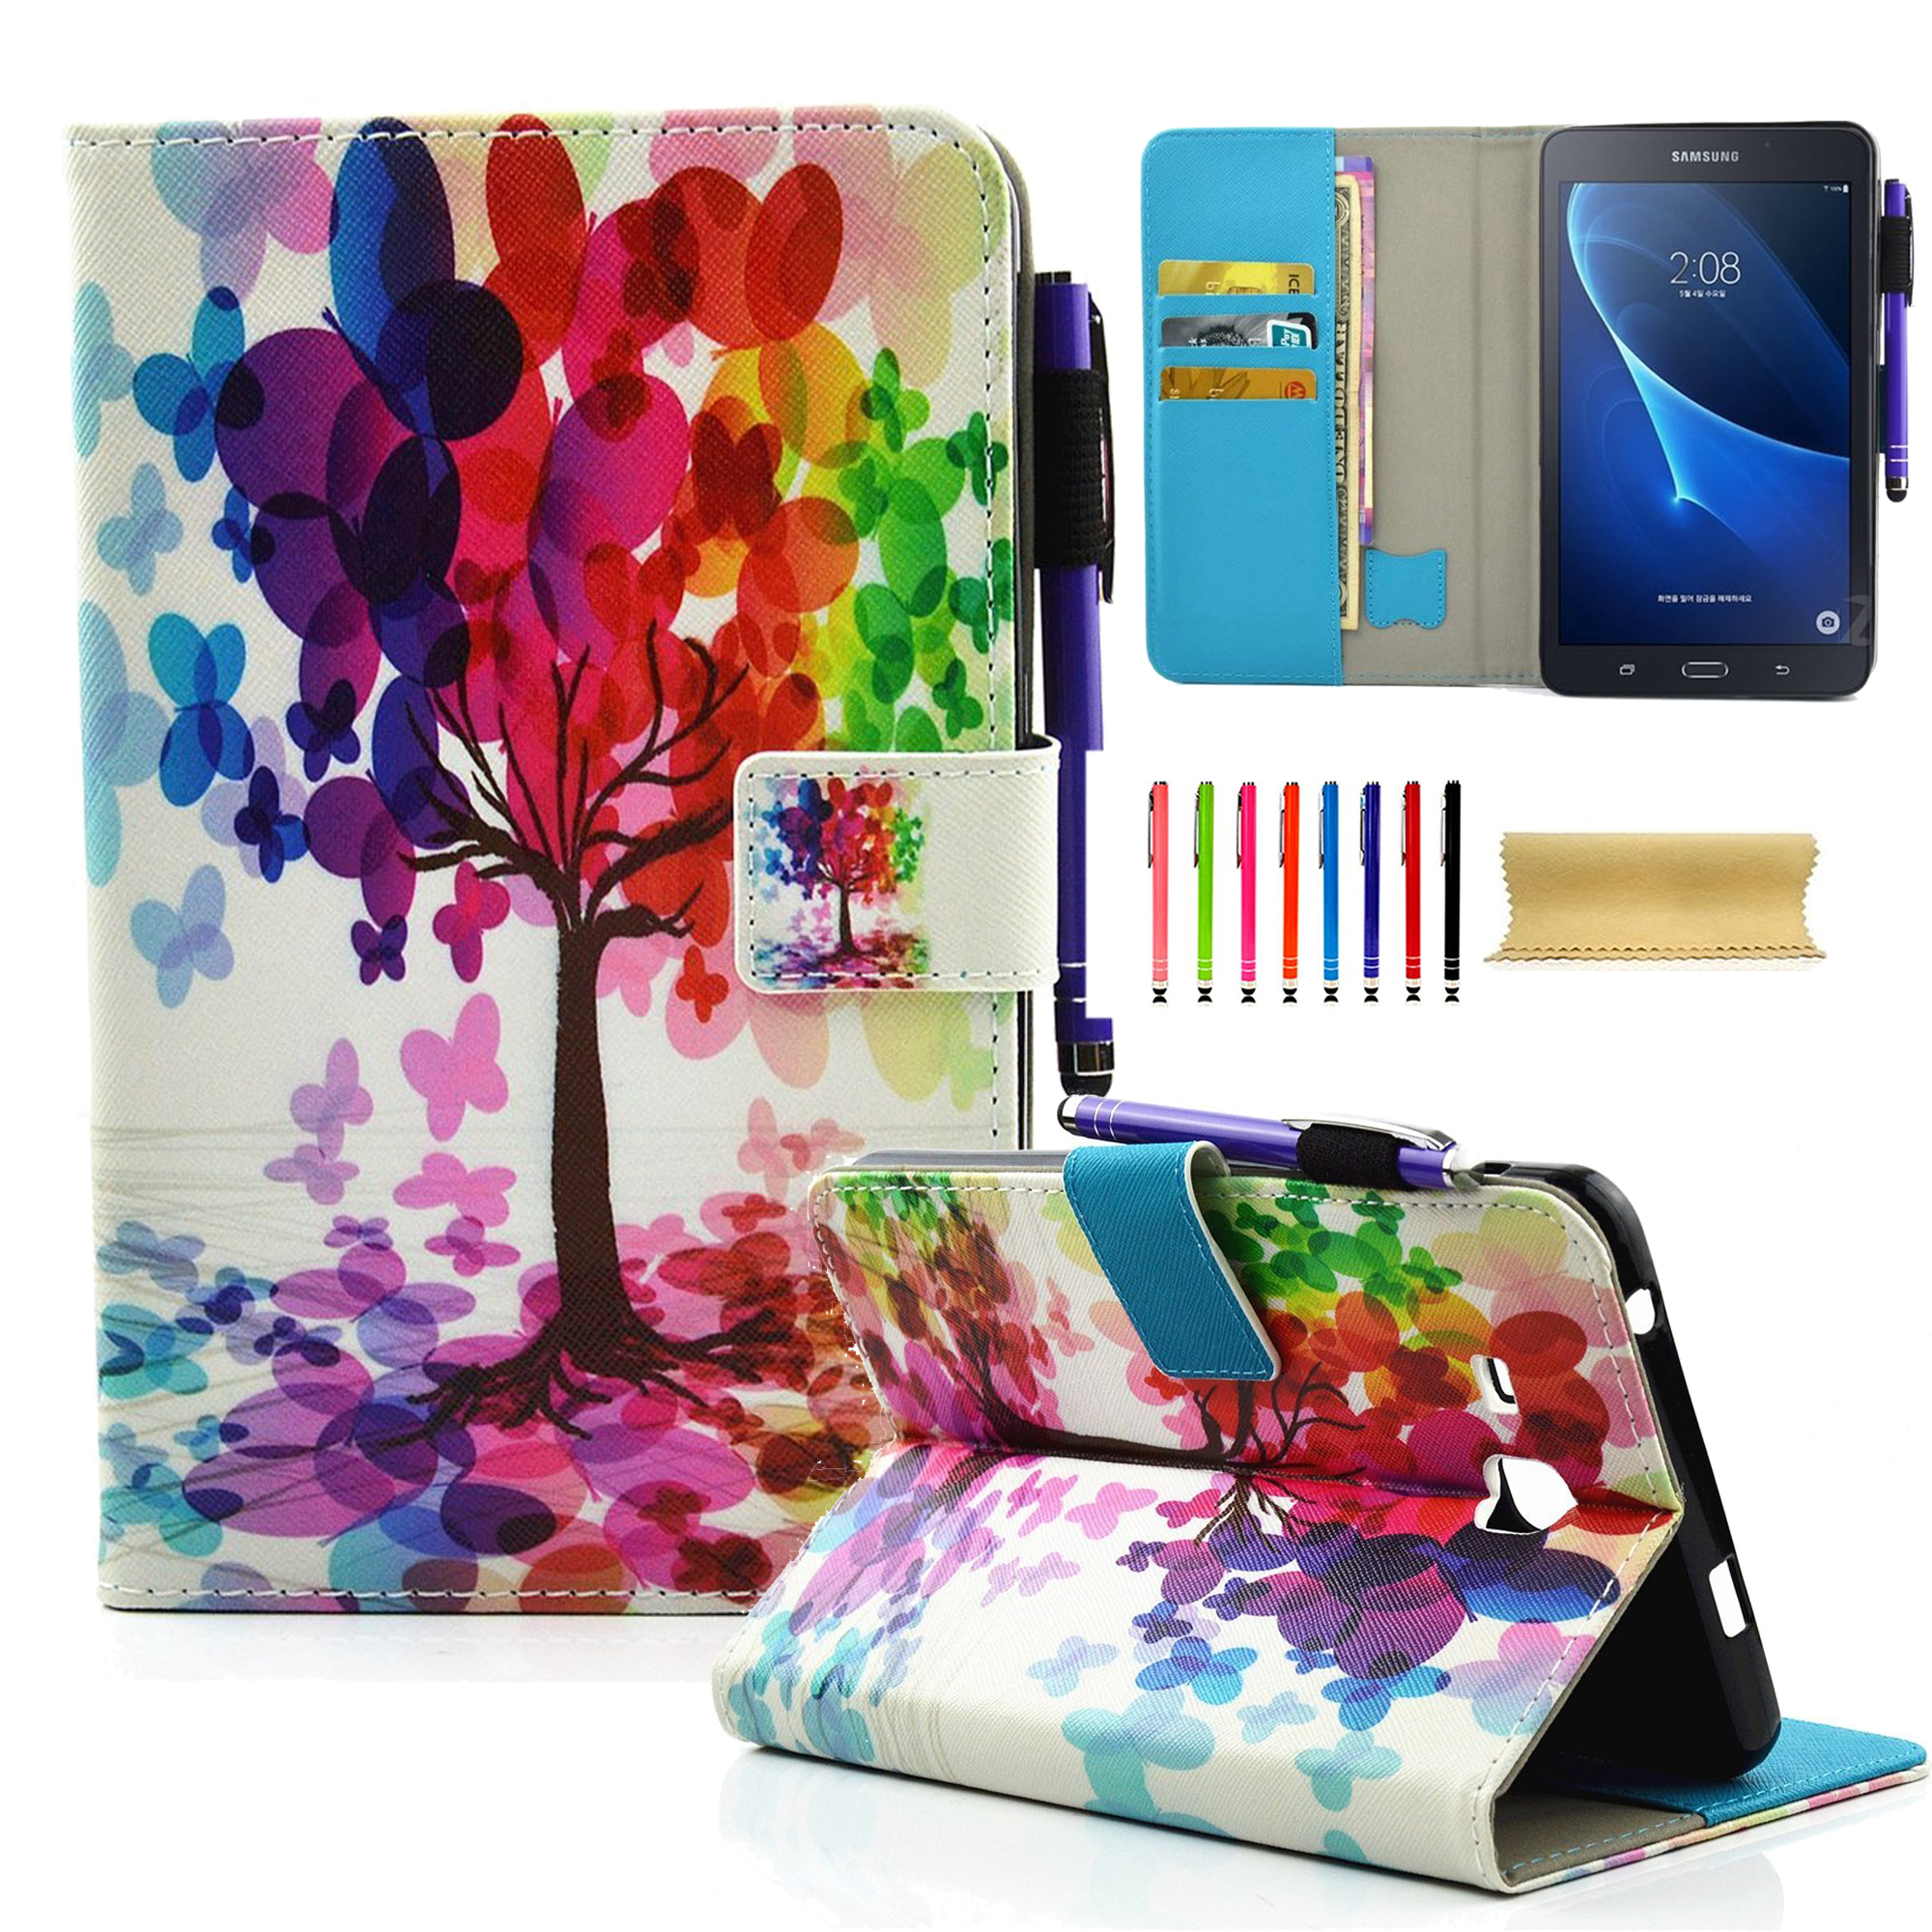 "Galaxy Tab A 7.0"" Case, SM-T280 Case, Goodest Smart PU Leather Folio Stand Cover with Auto Wake/Sleep Wallet Case for Samsung Galaxy Tab A 7.0-inch Tablet, Butterfly Tree"